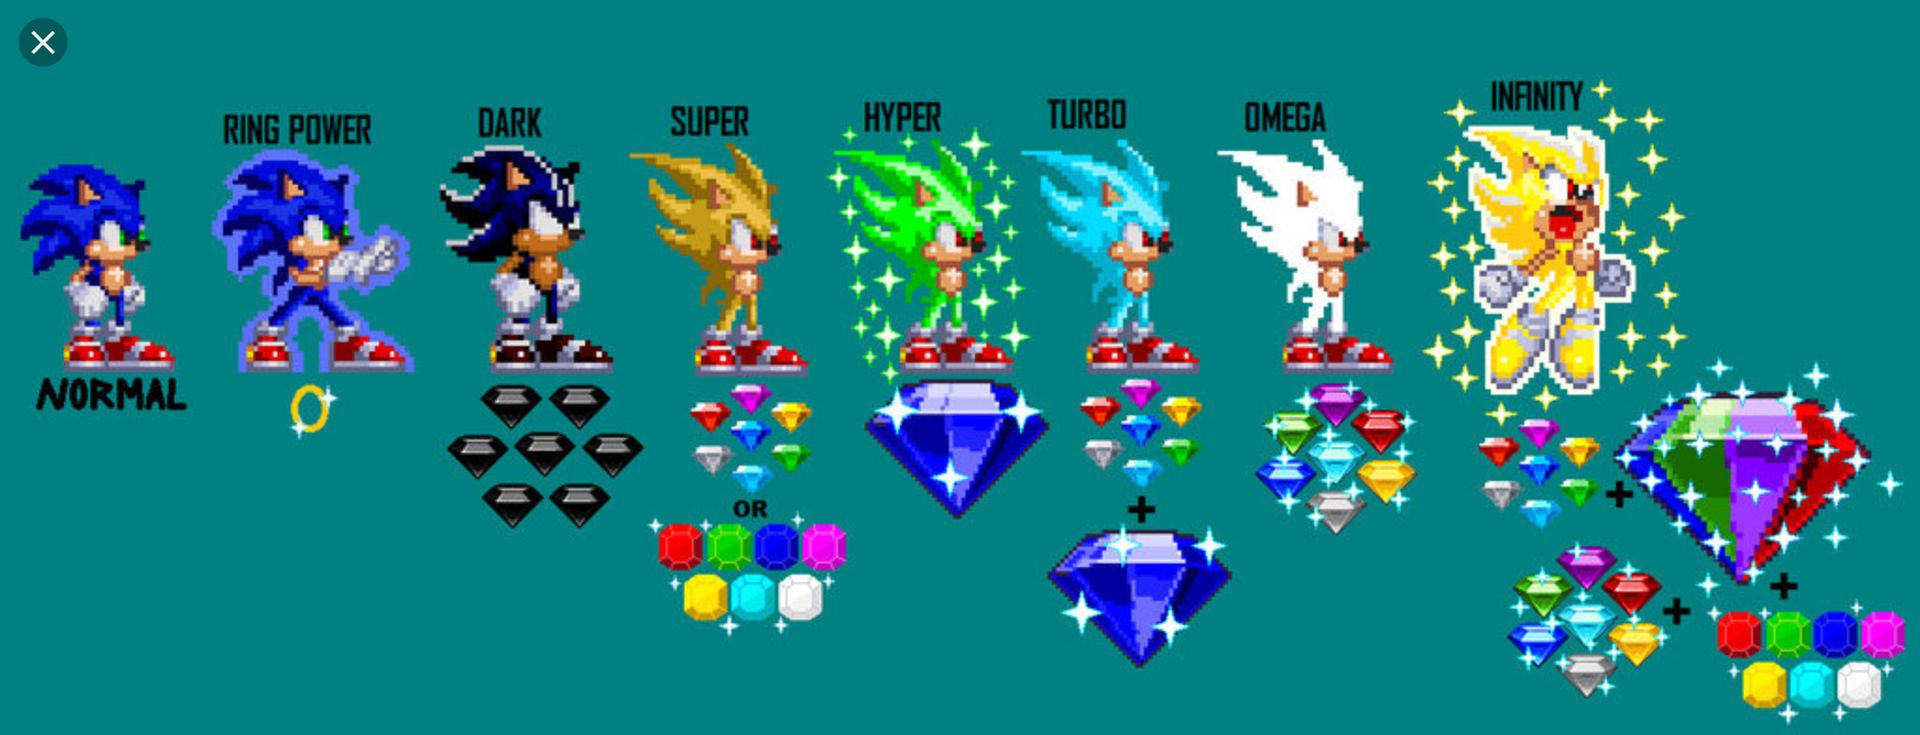 Sonic Characters And Oc S Power Levels Sonic The